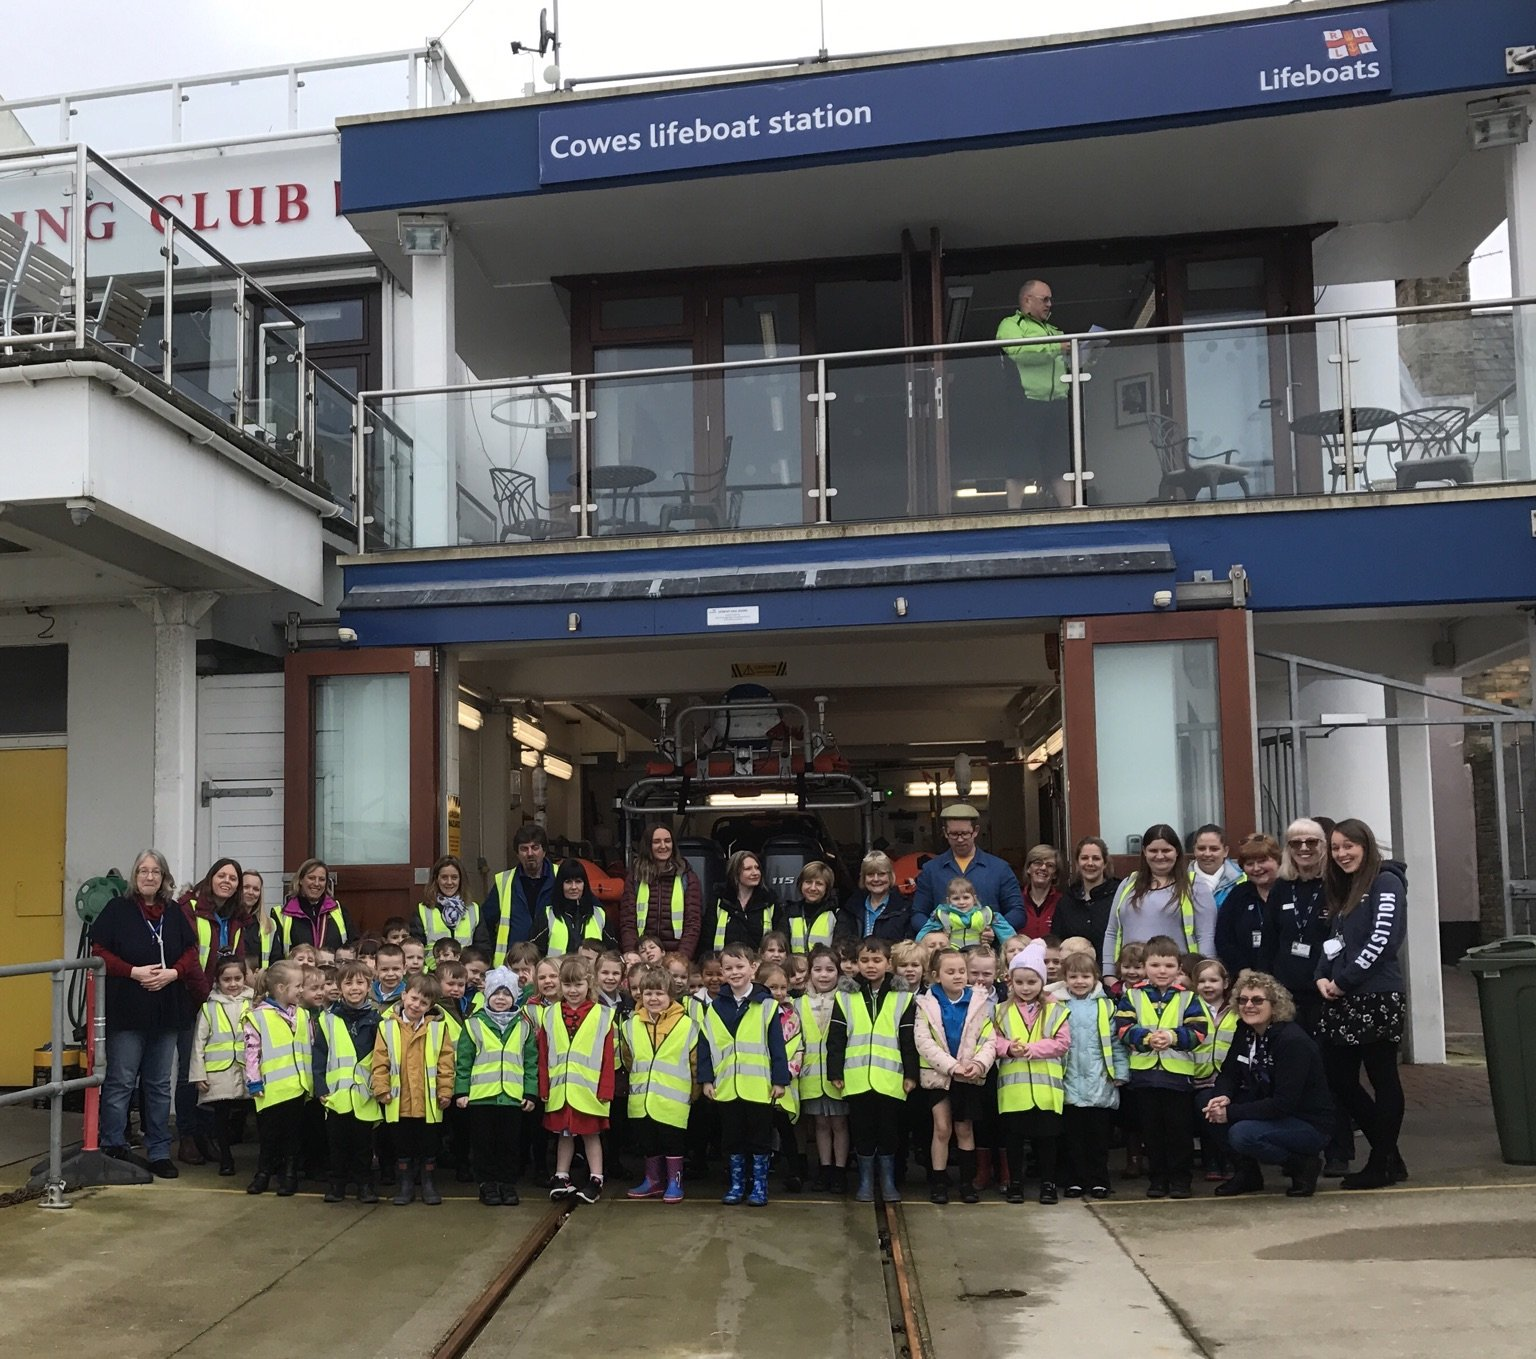 Reception visit to Cowes Lifeboat Station